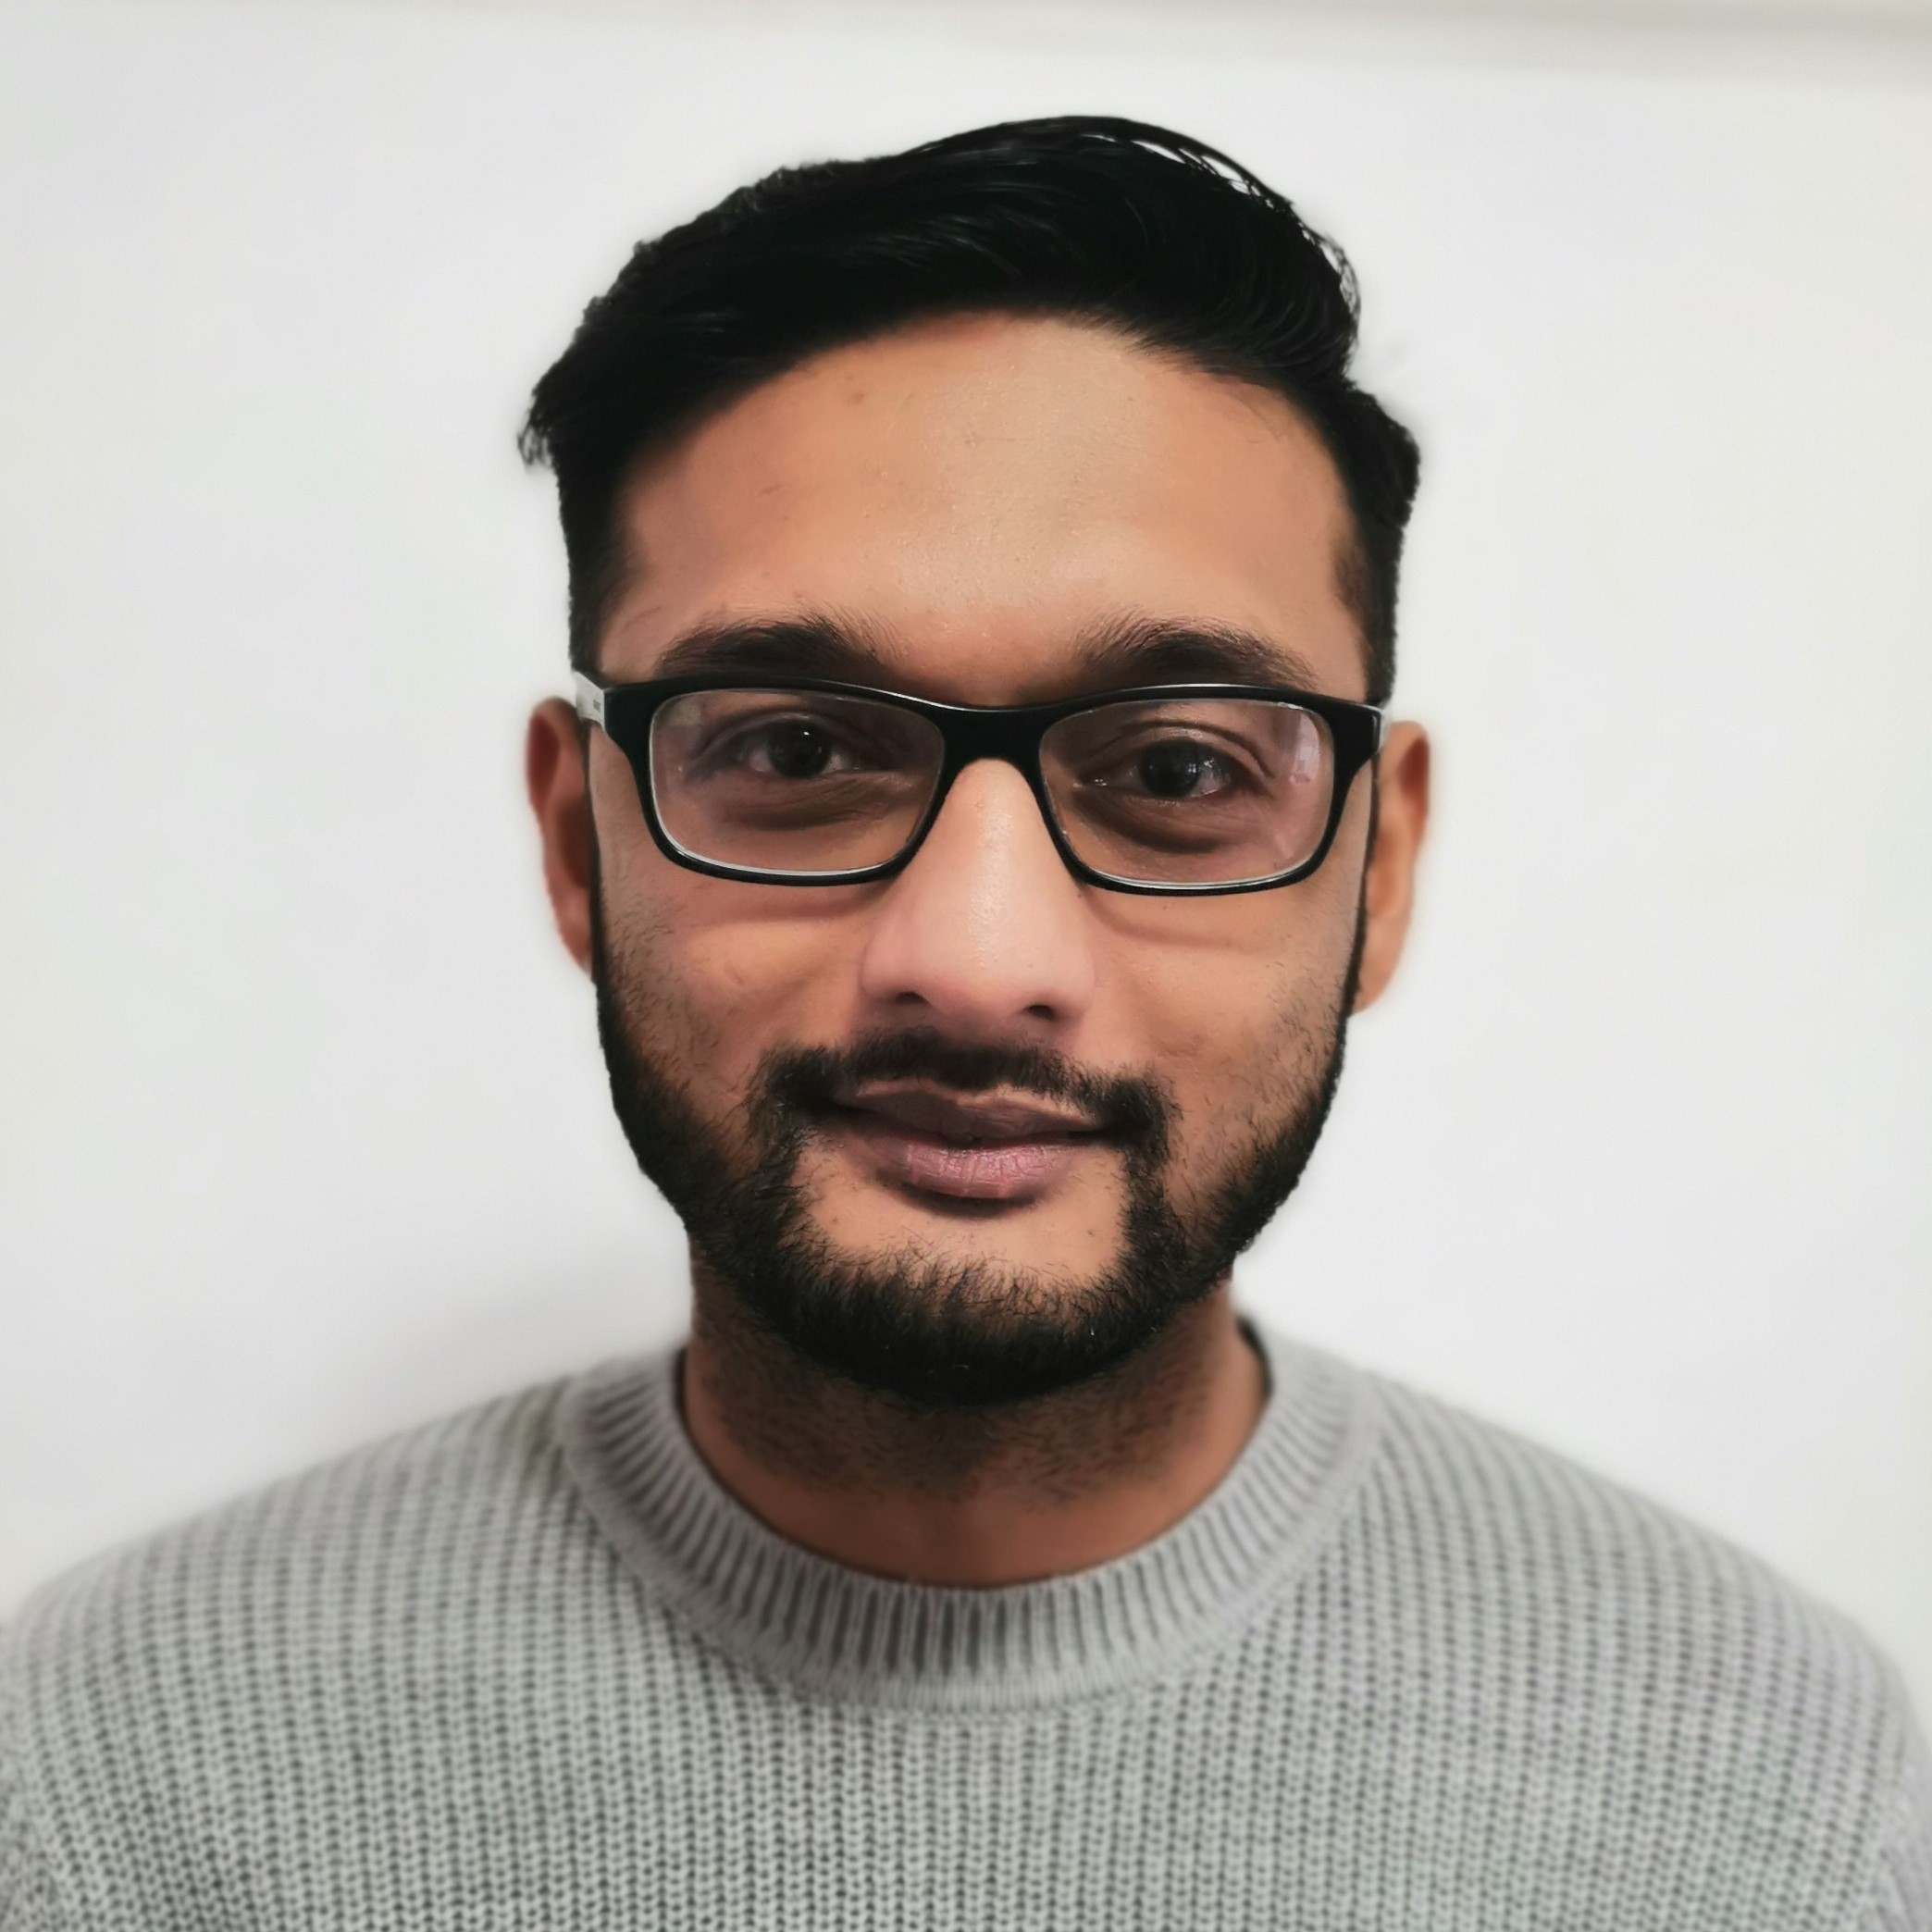 profile picture of mohammed islam